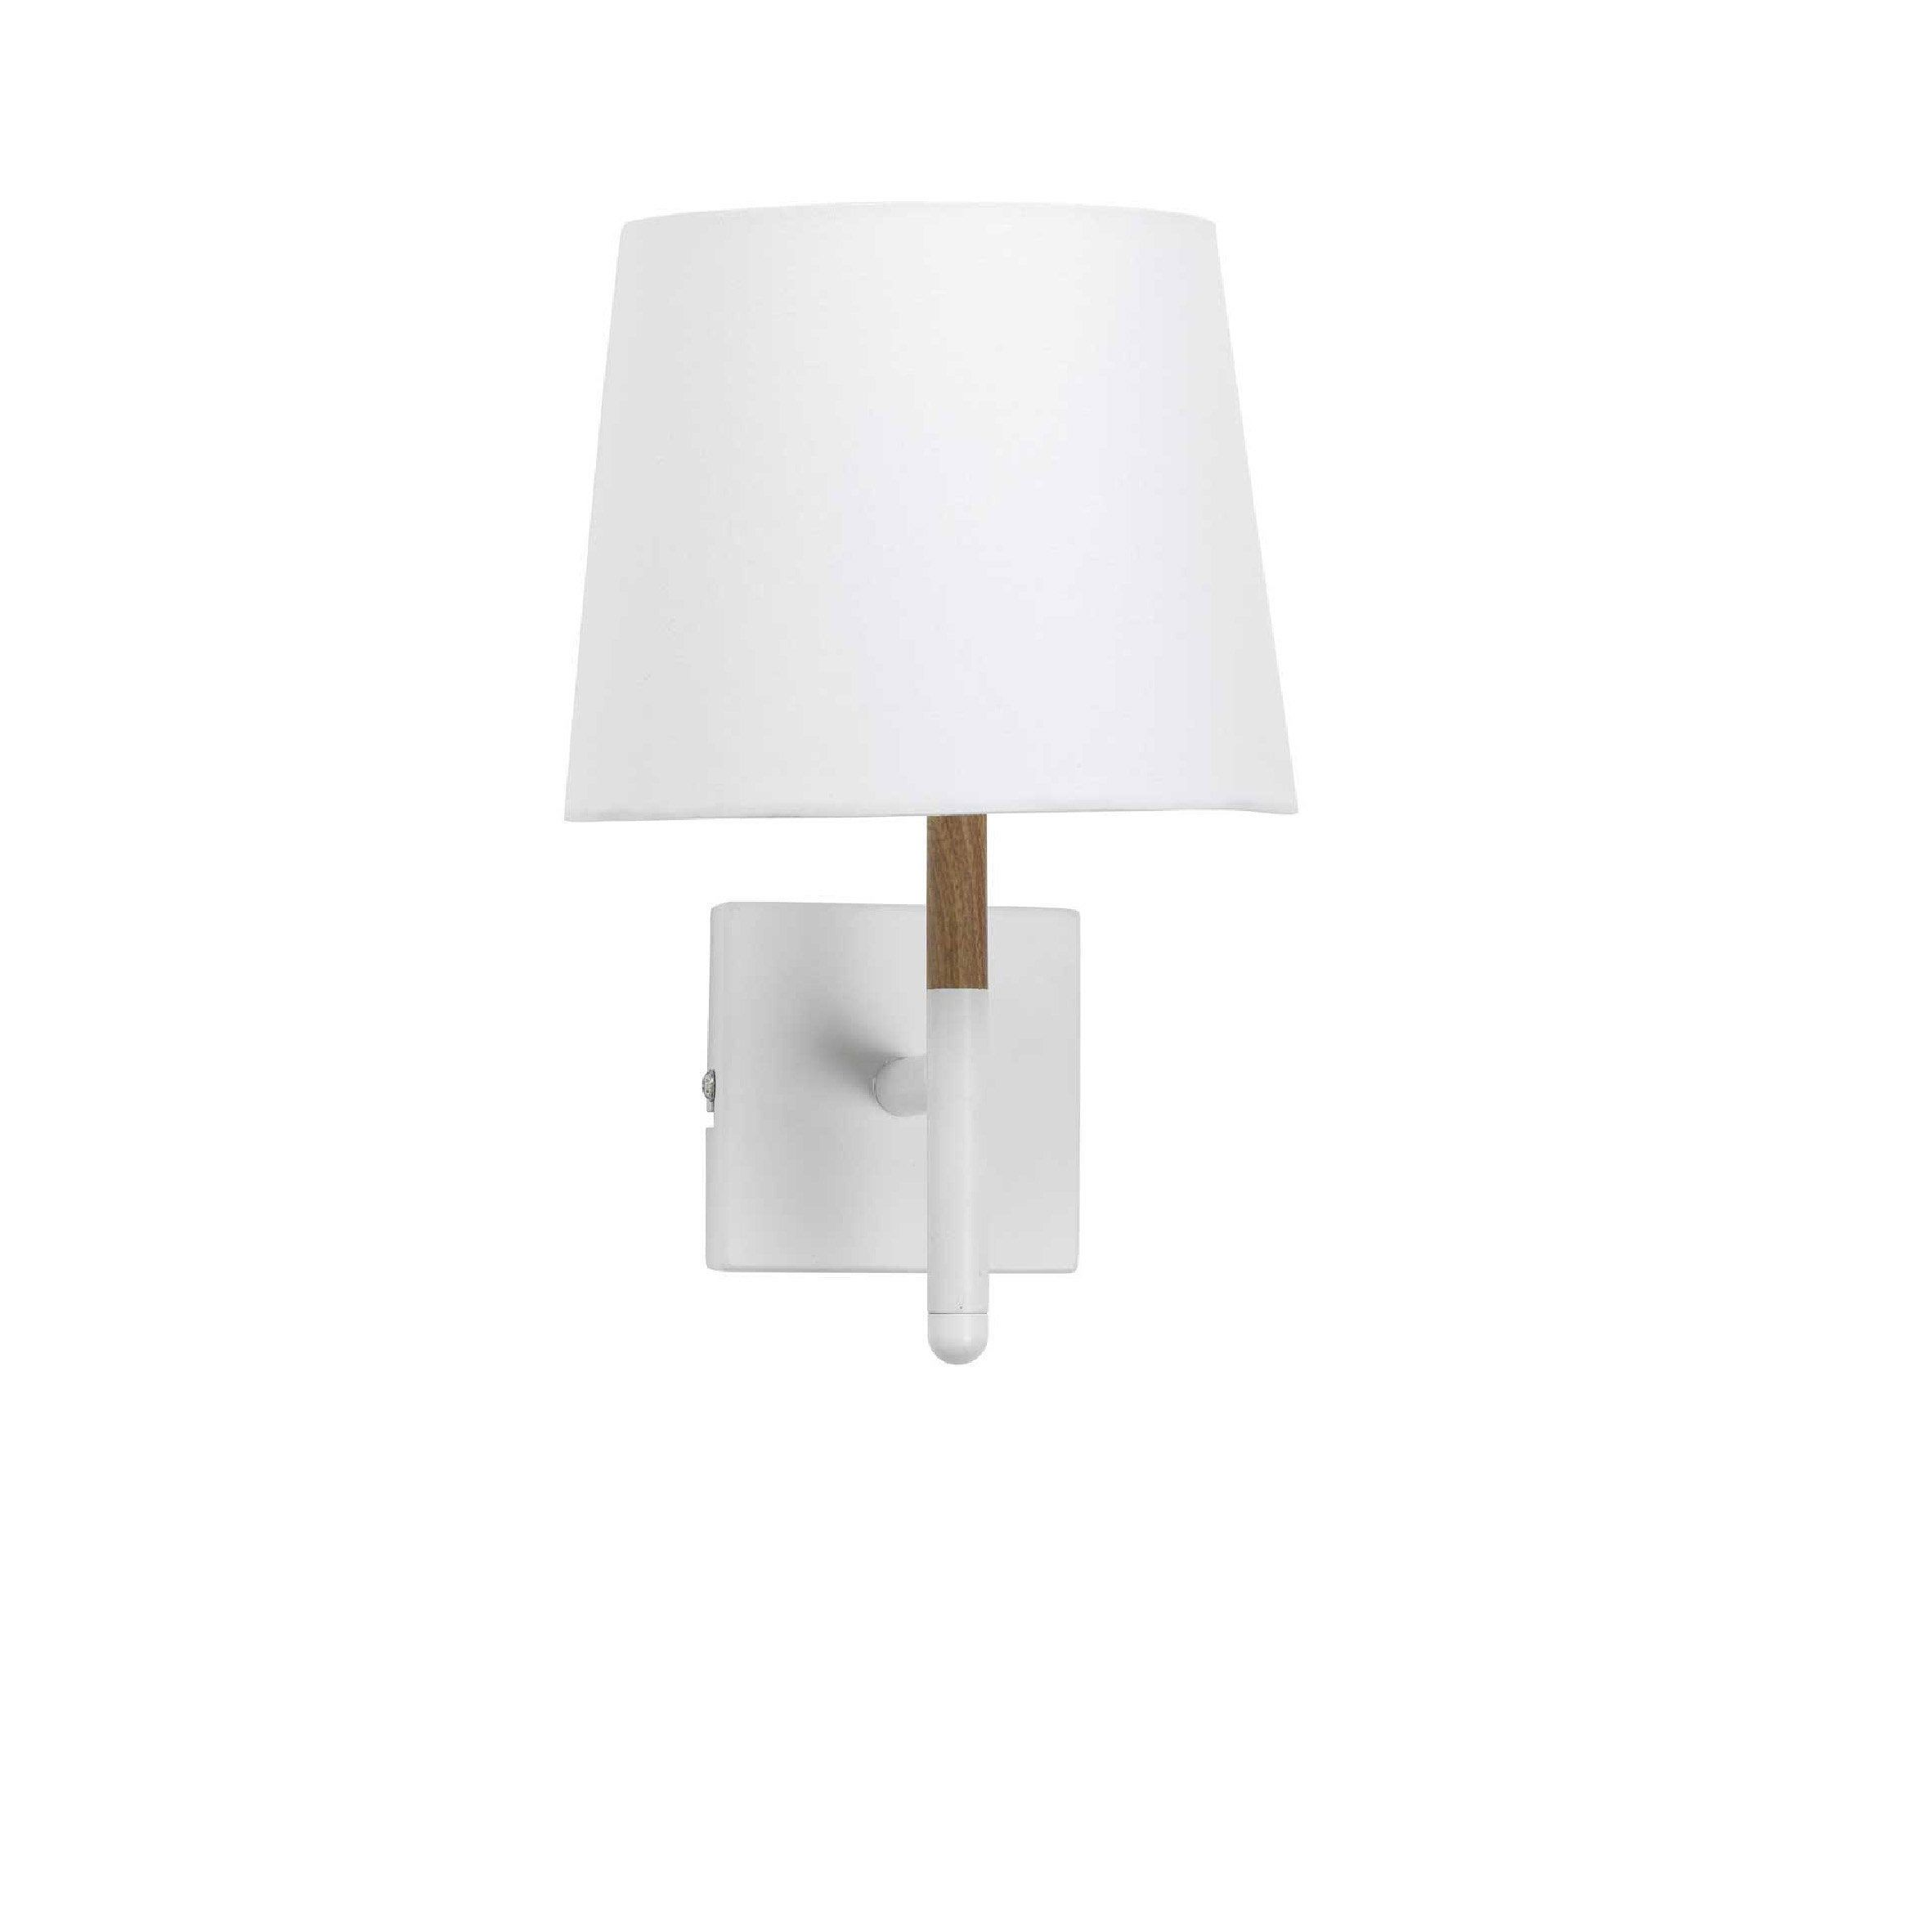 Applique Metal Blanc Mathias Lotta 1 Lumiere S En 2020 Applique Murale Blanche Luminaire